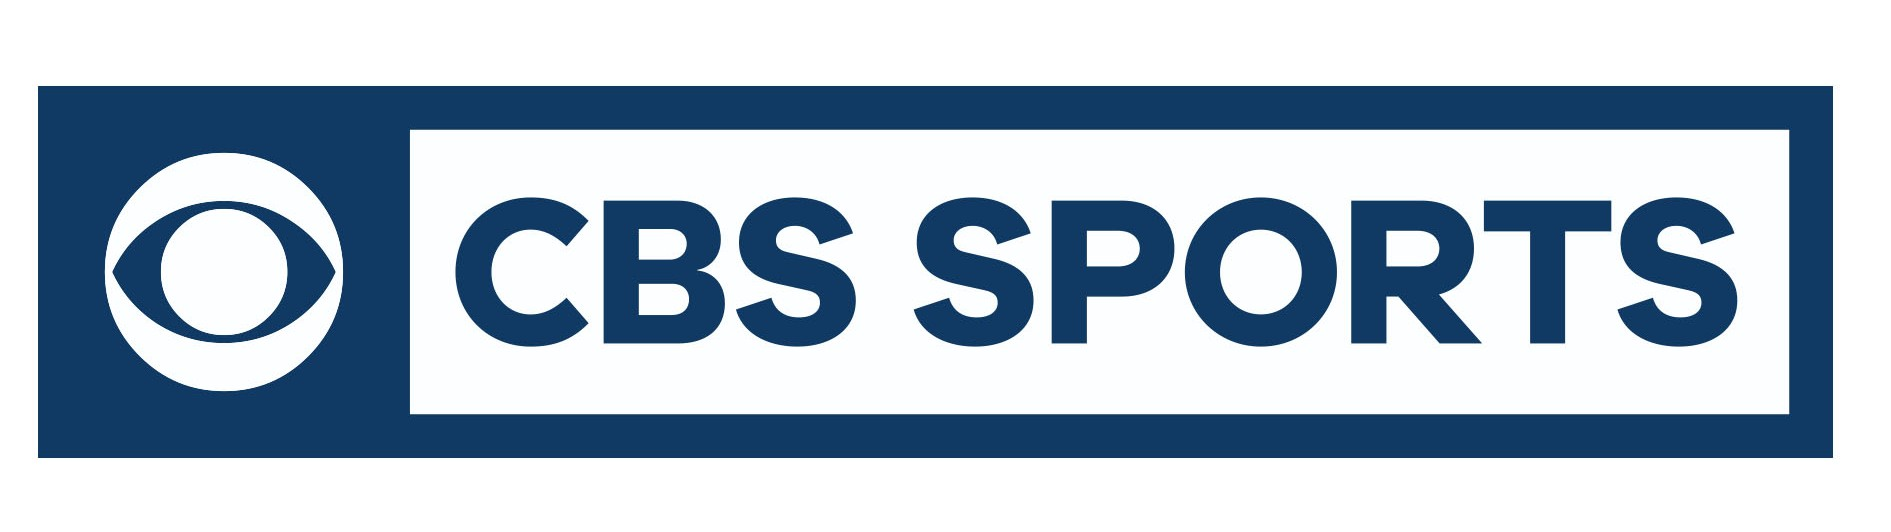 cbs cfb yahoo sports college basketball